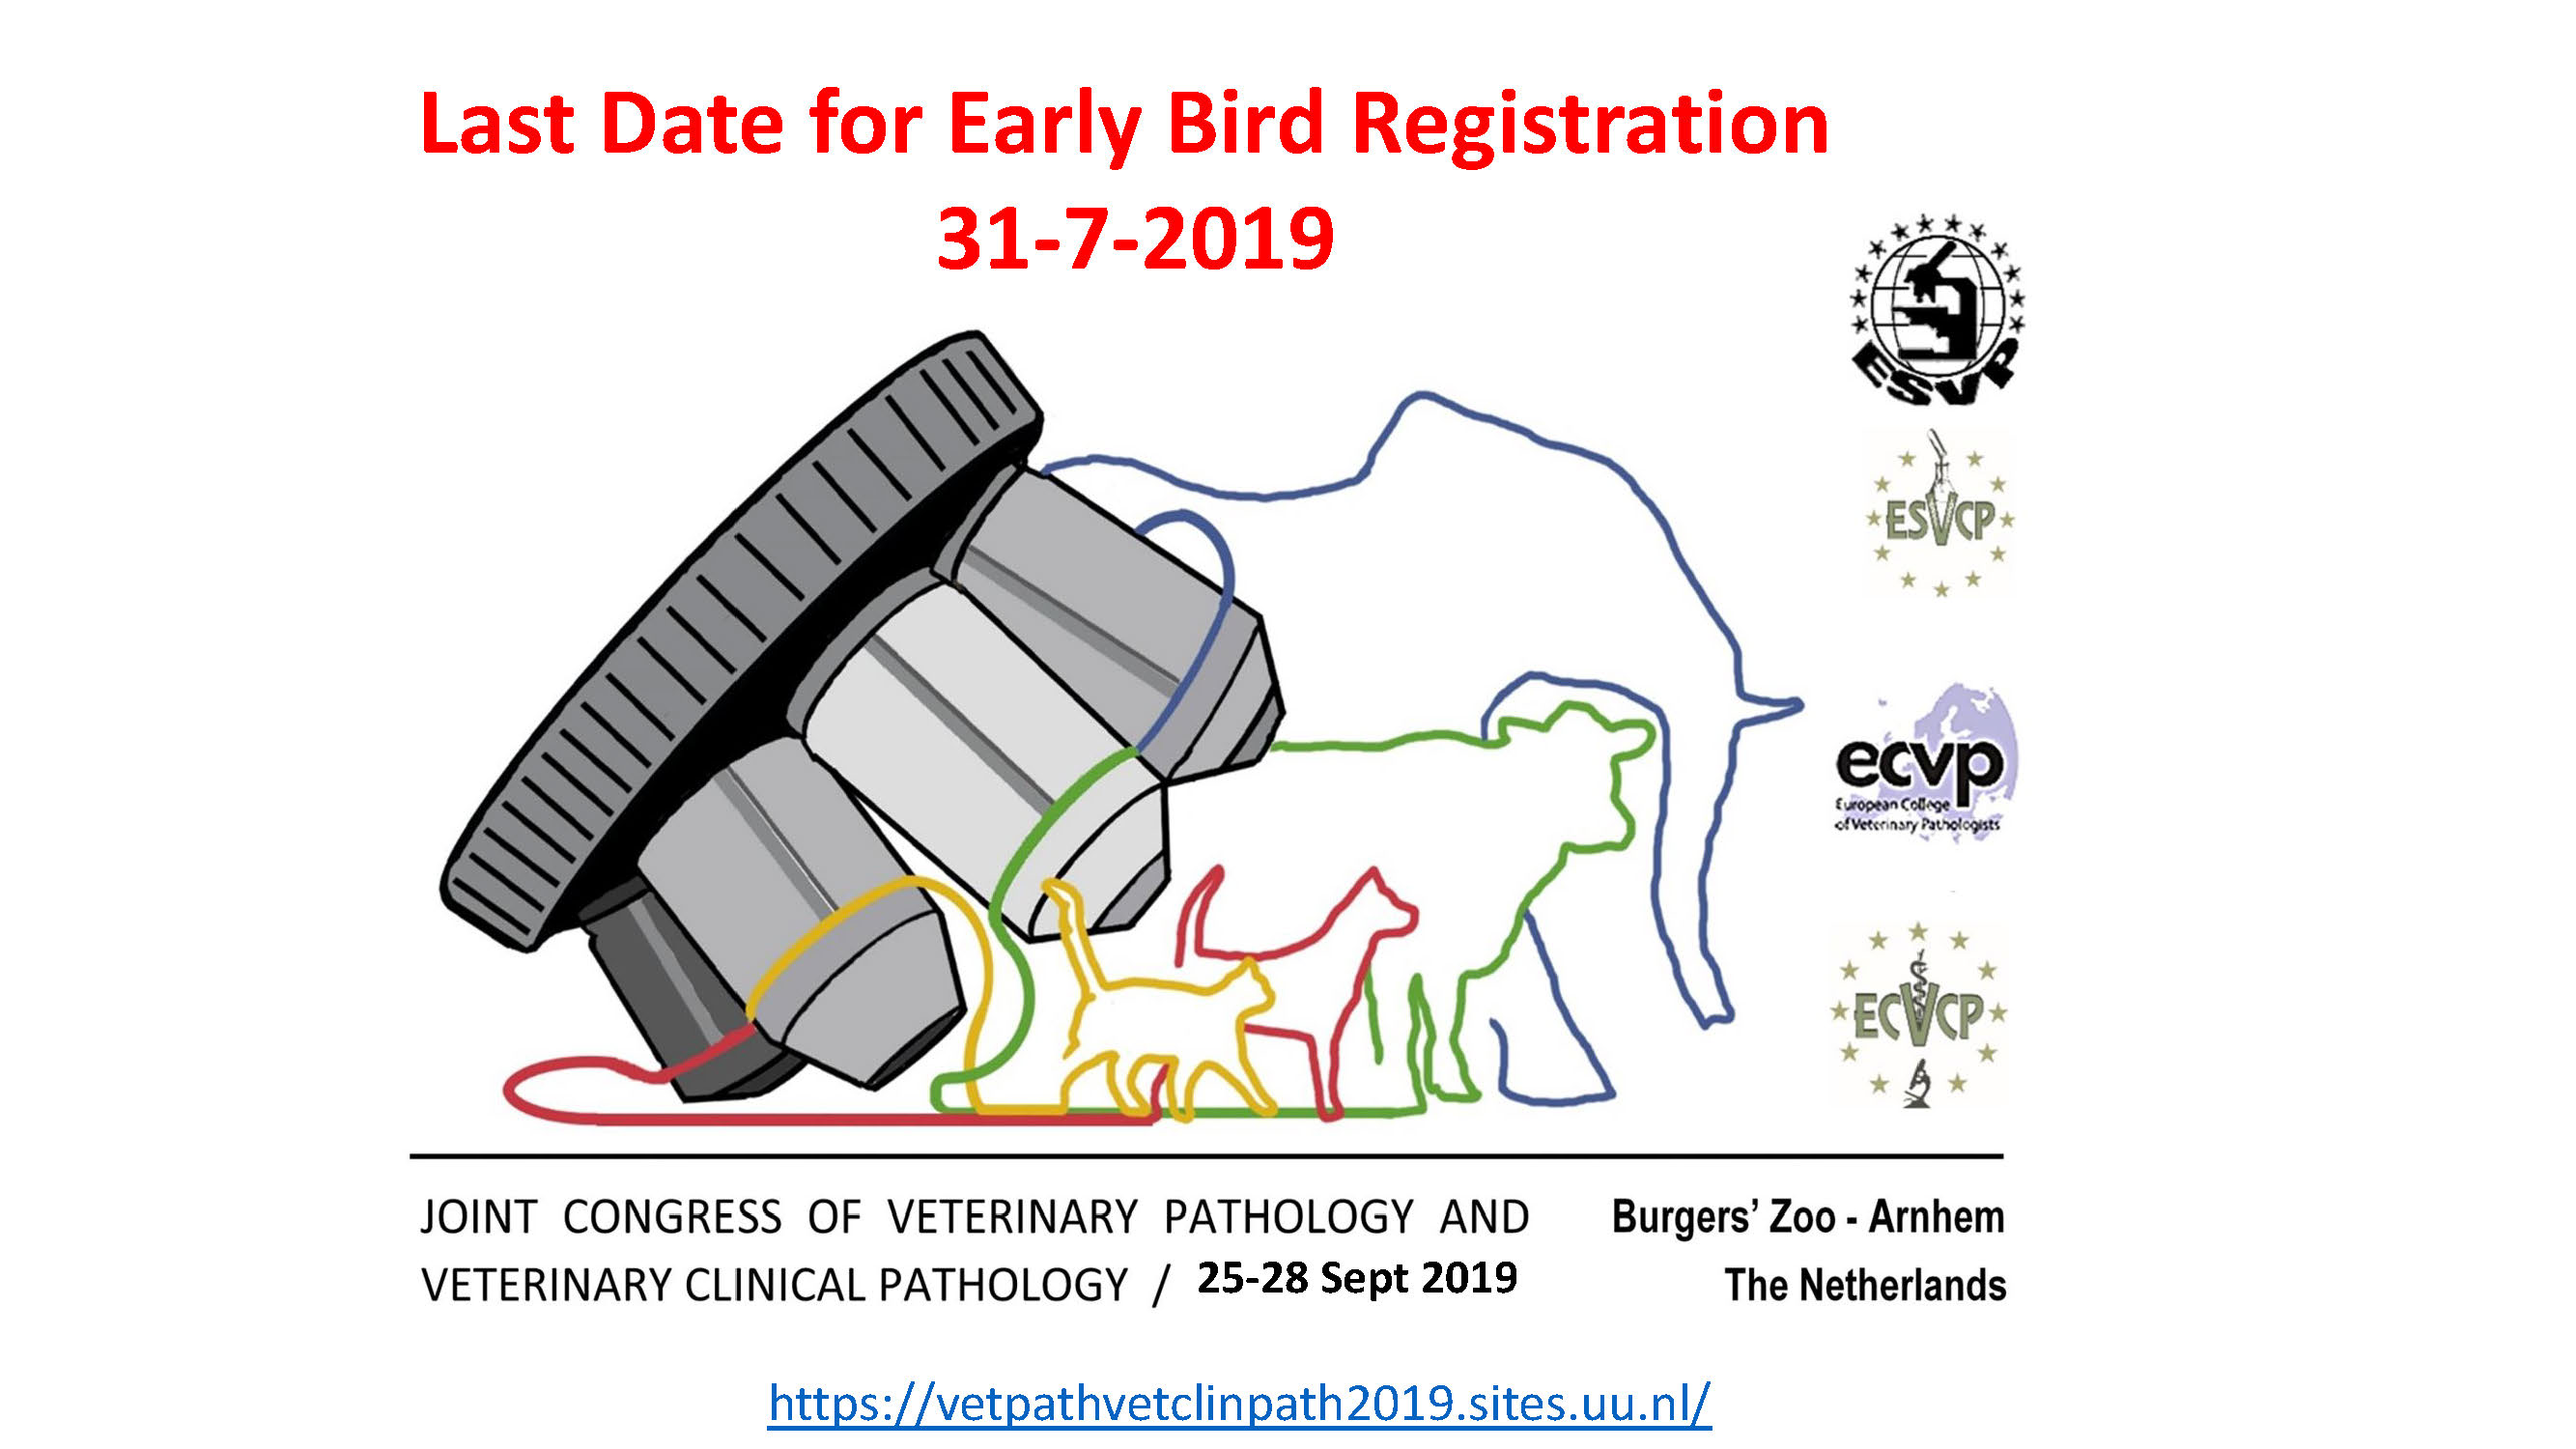 European Society of Veterinary Pathology - ESVP